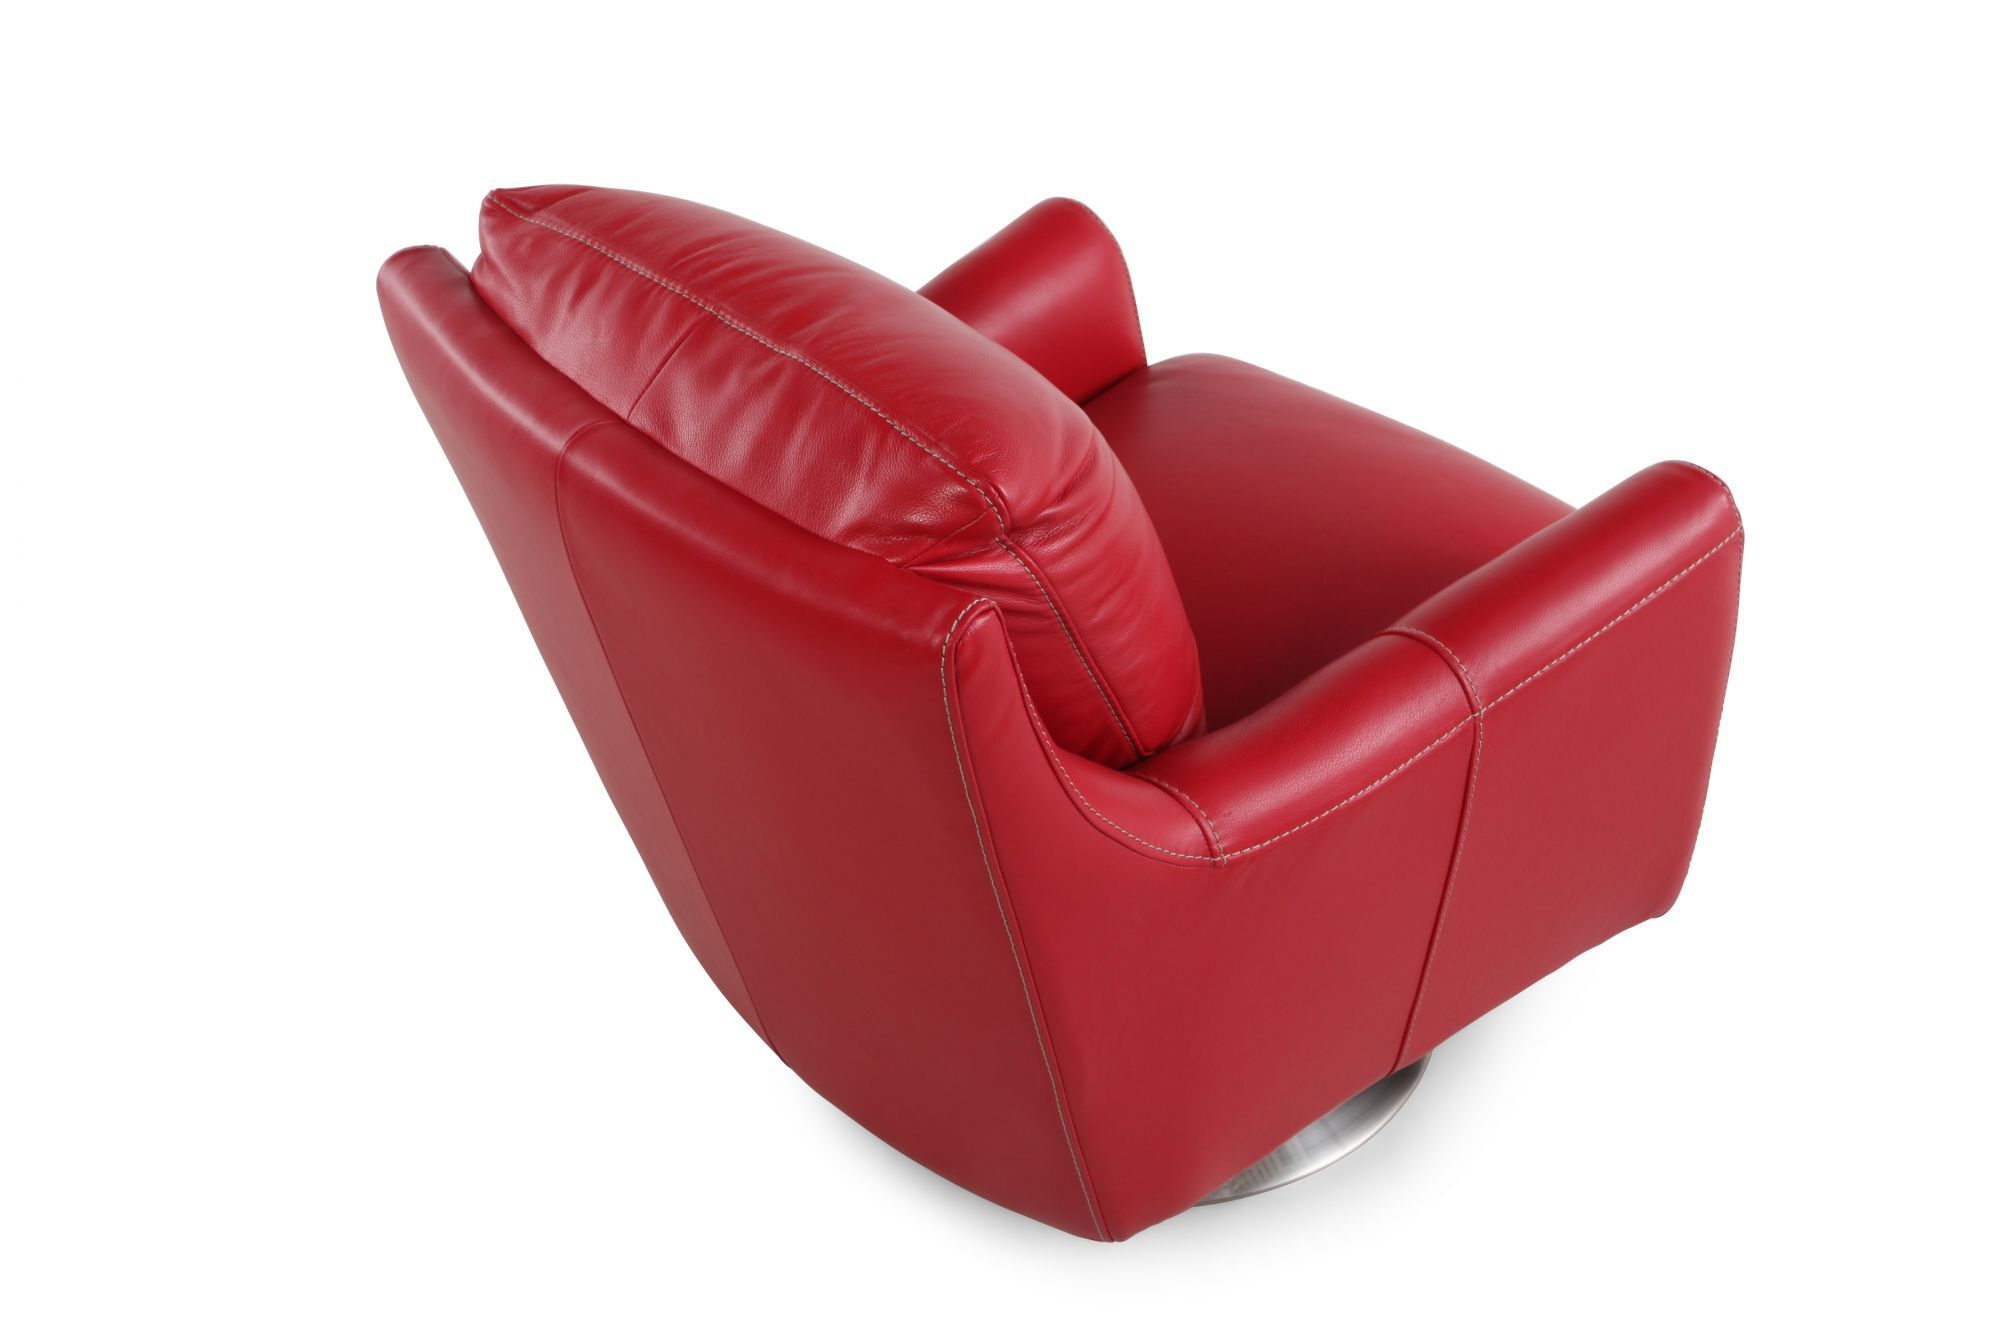 Red Swivel Chair Track Arm Swivel Chair In Red Mathis Brothers Furniture